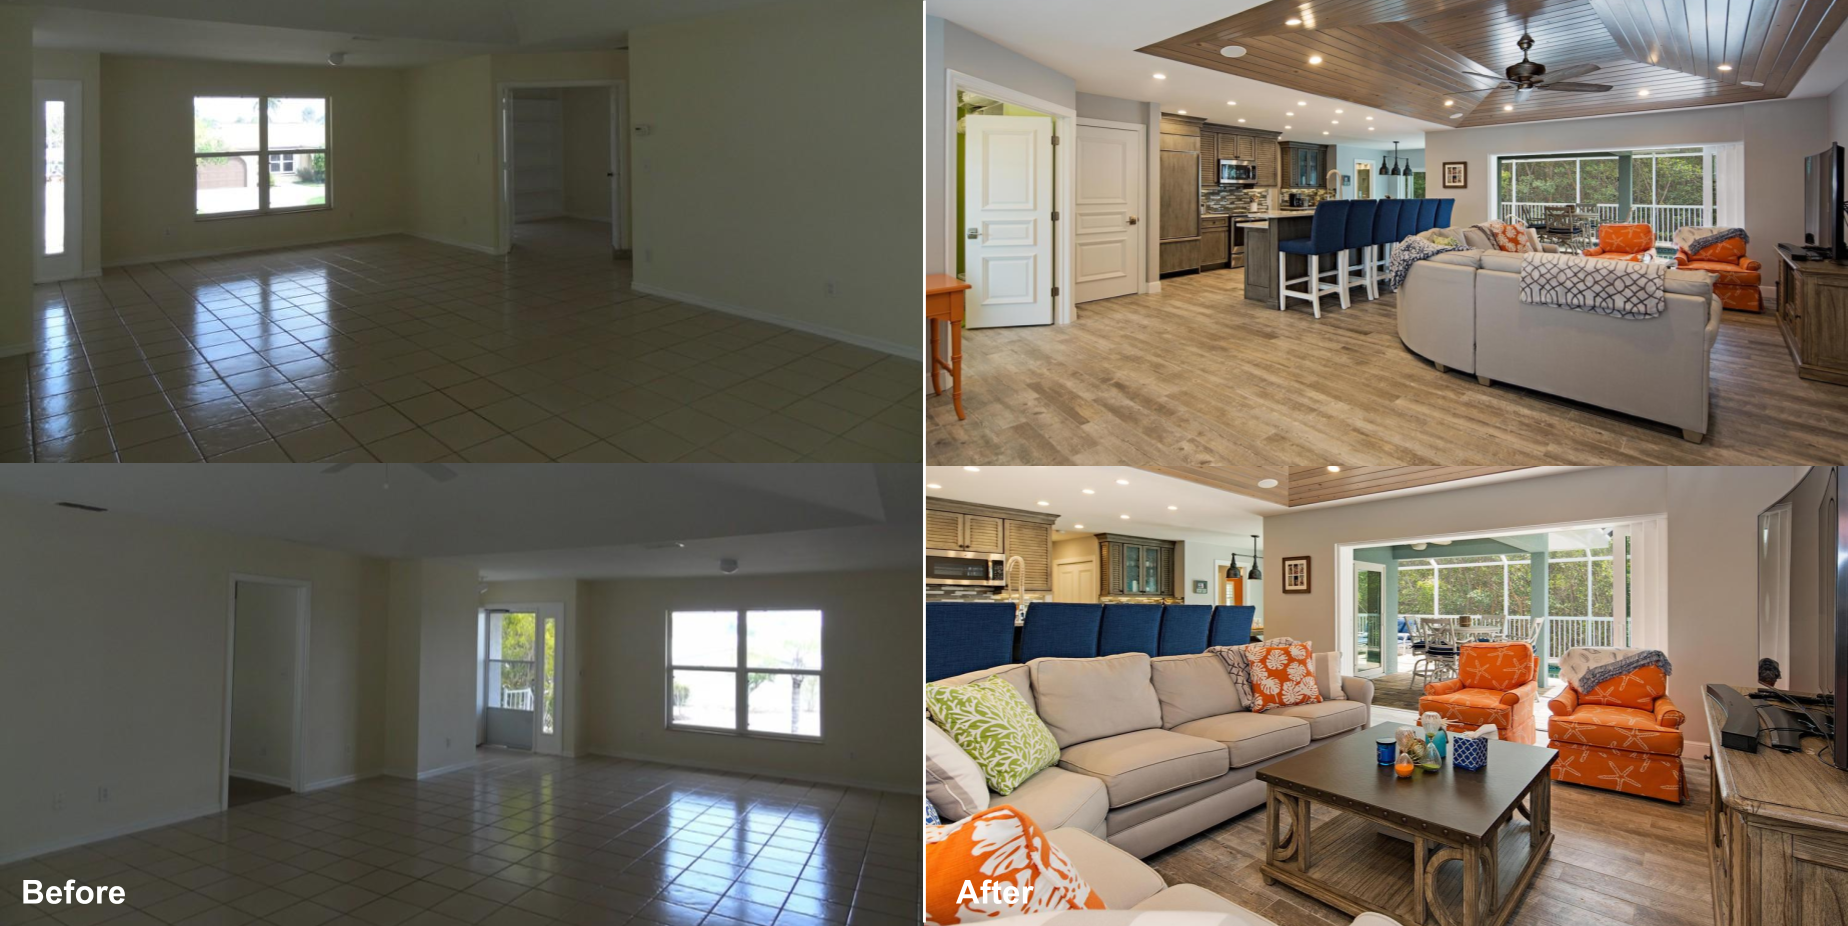 16 Fairview Great Room %2F Kitchen Before and After.png